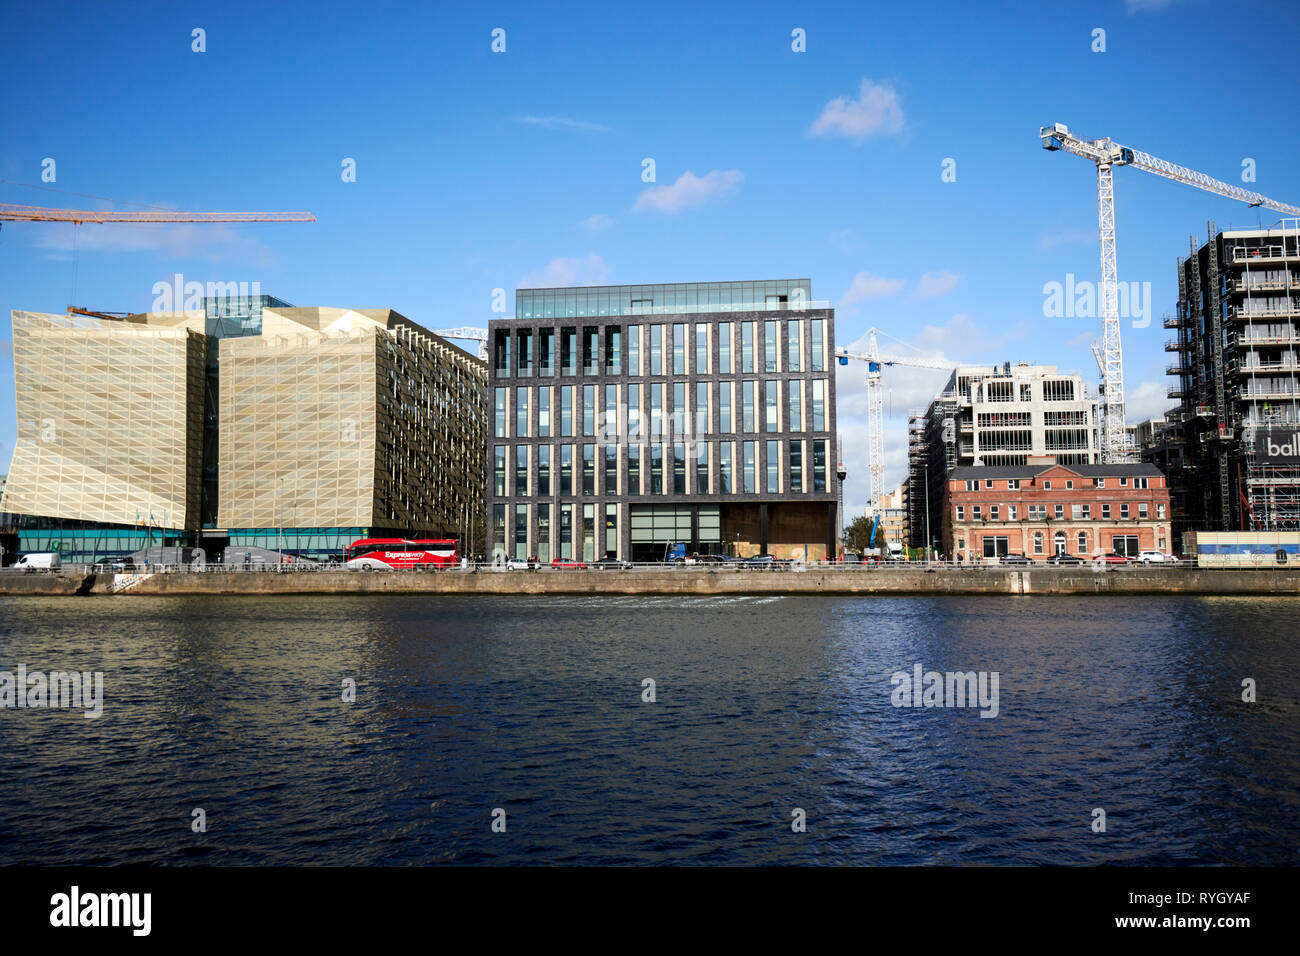 cental bank of ireland 1 and 2 dublin landings and cranes and new office developments at dublin landings in the north wall quay docklands waterfront r - Stock Image